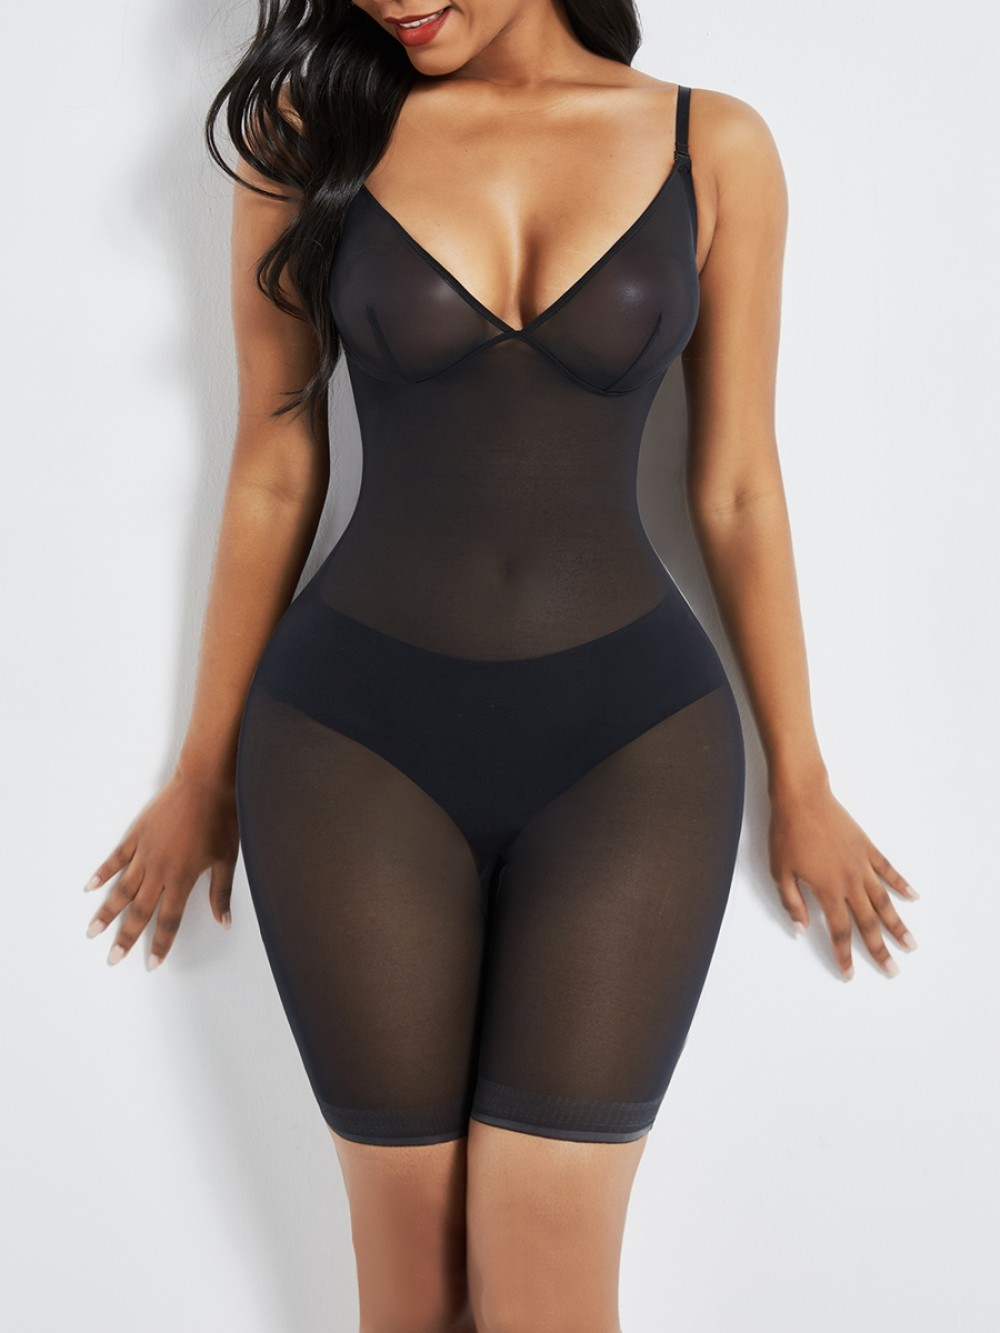 Black Open Gusset See Through Full Body Shaper Smooth Silhouette